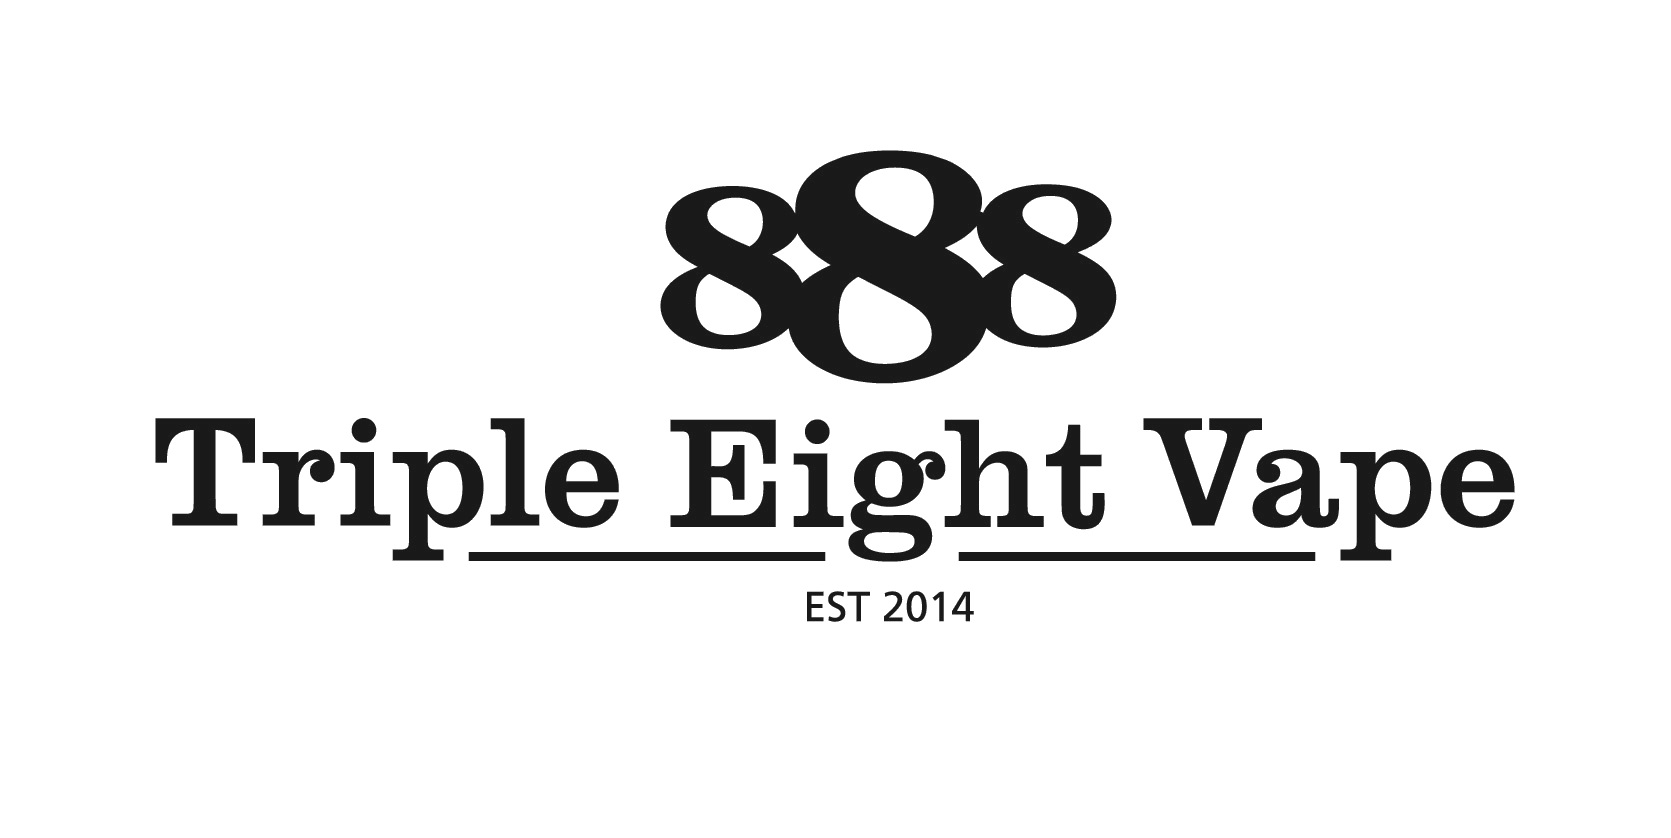 Triple Eight Vape